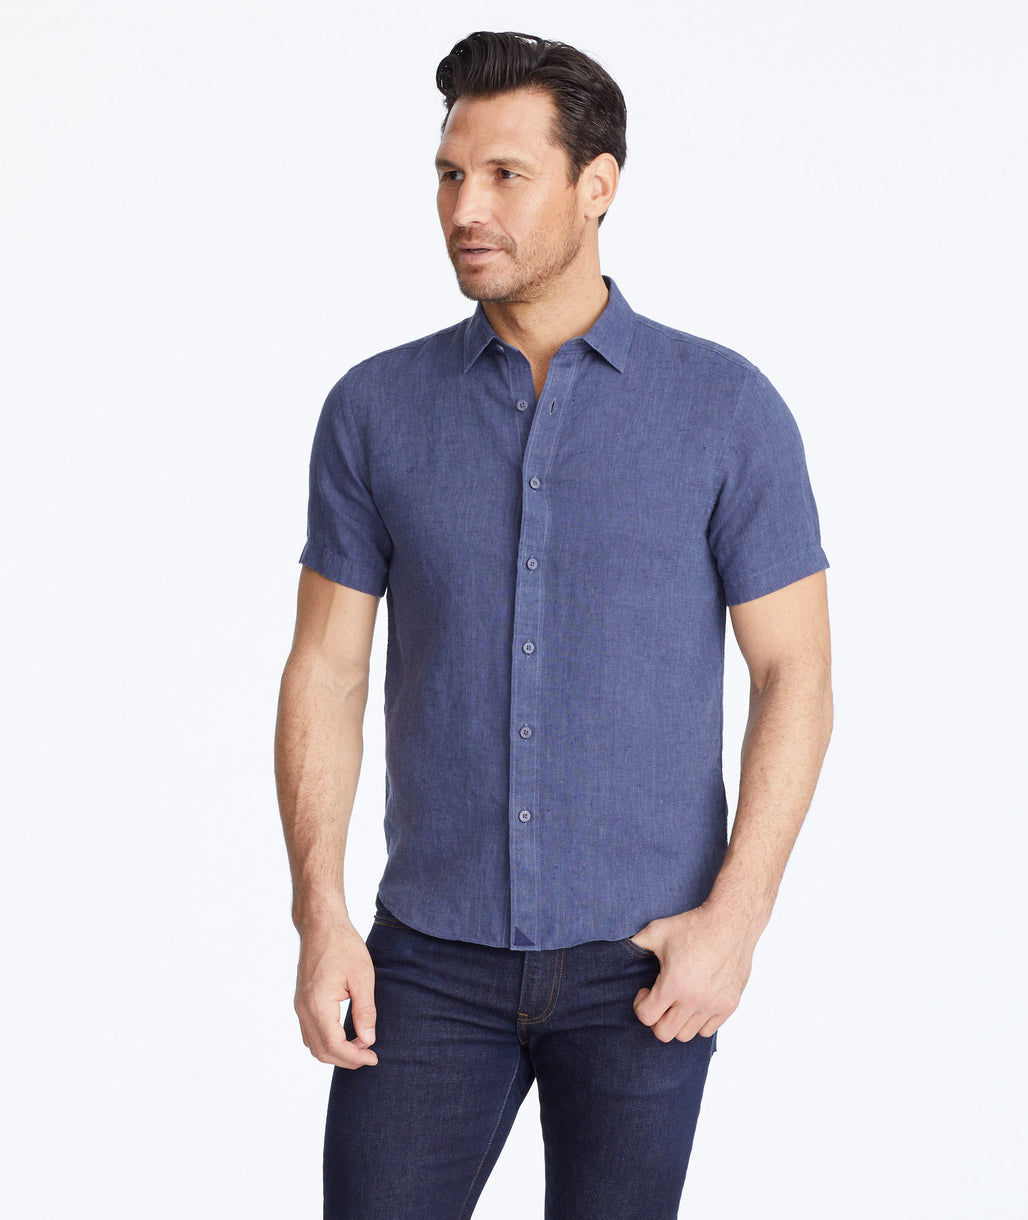 Model wearing a Navy Wrinkle-Resistant Linen Short-Sleeve Araujo Shirt